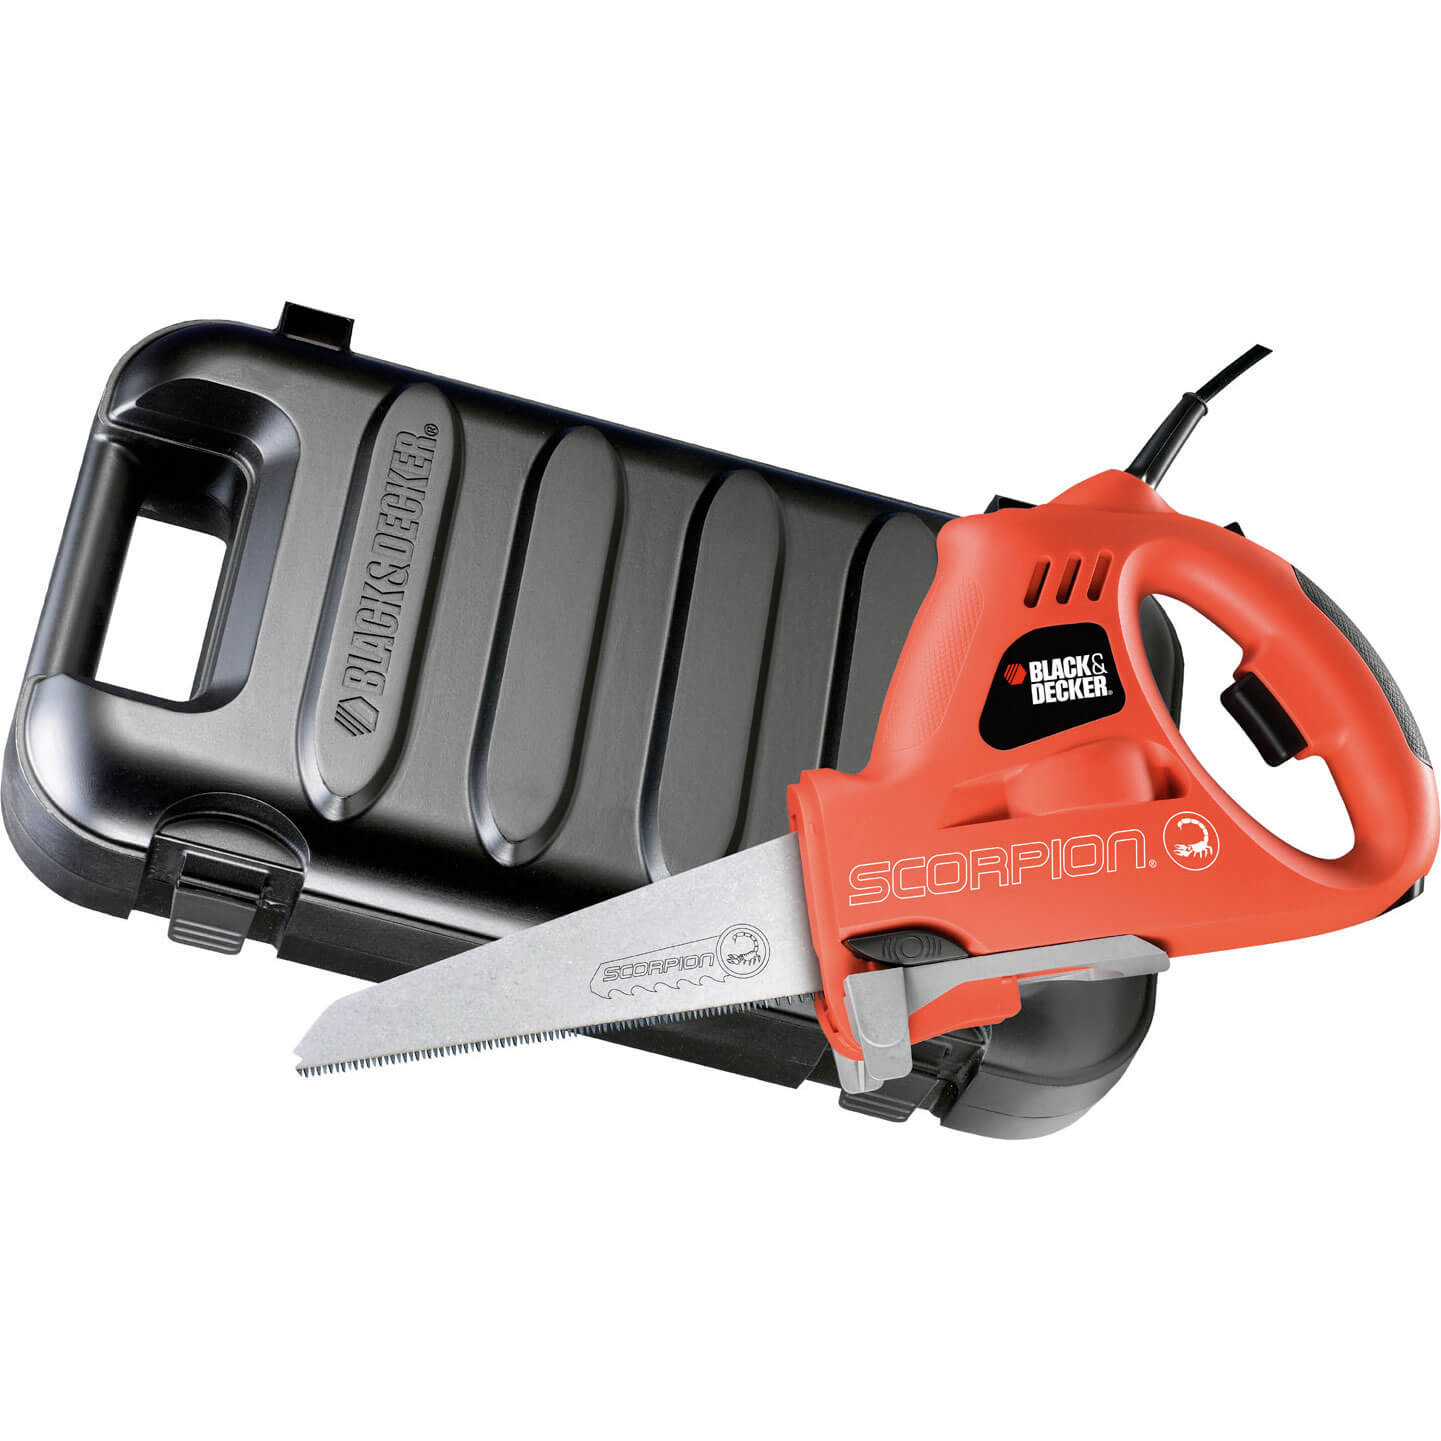 Black & Decker KS890EK Scorpion Saw in Kitbox with 3 Blades 400w 240v